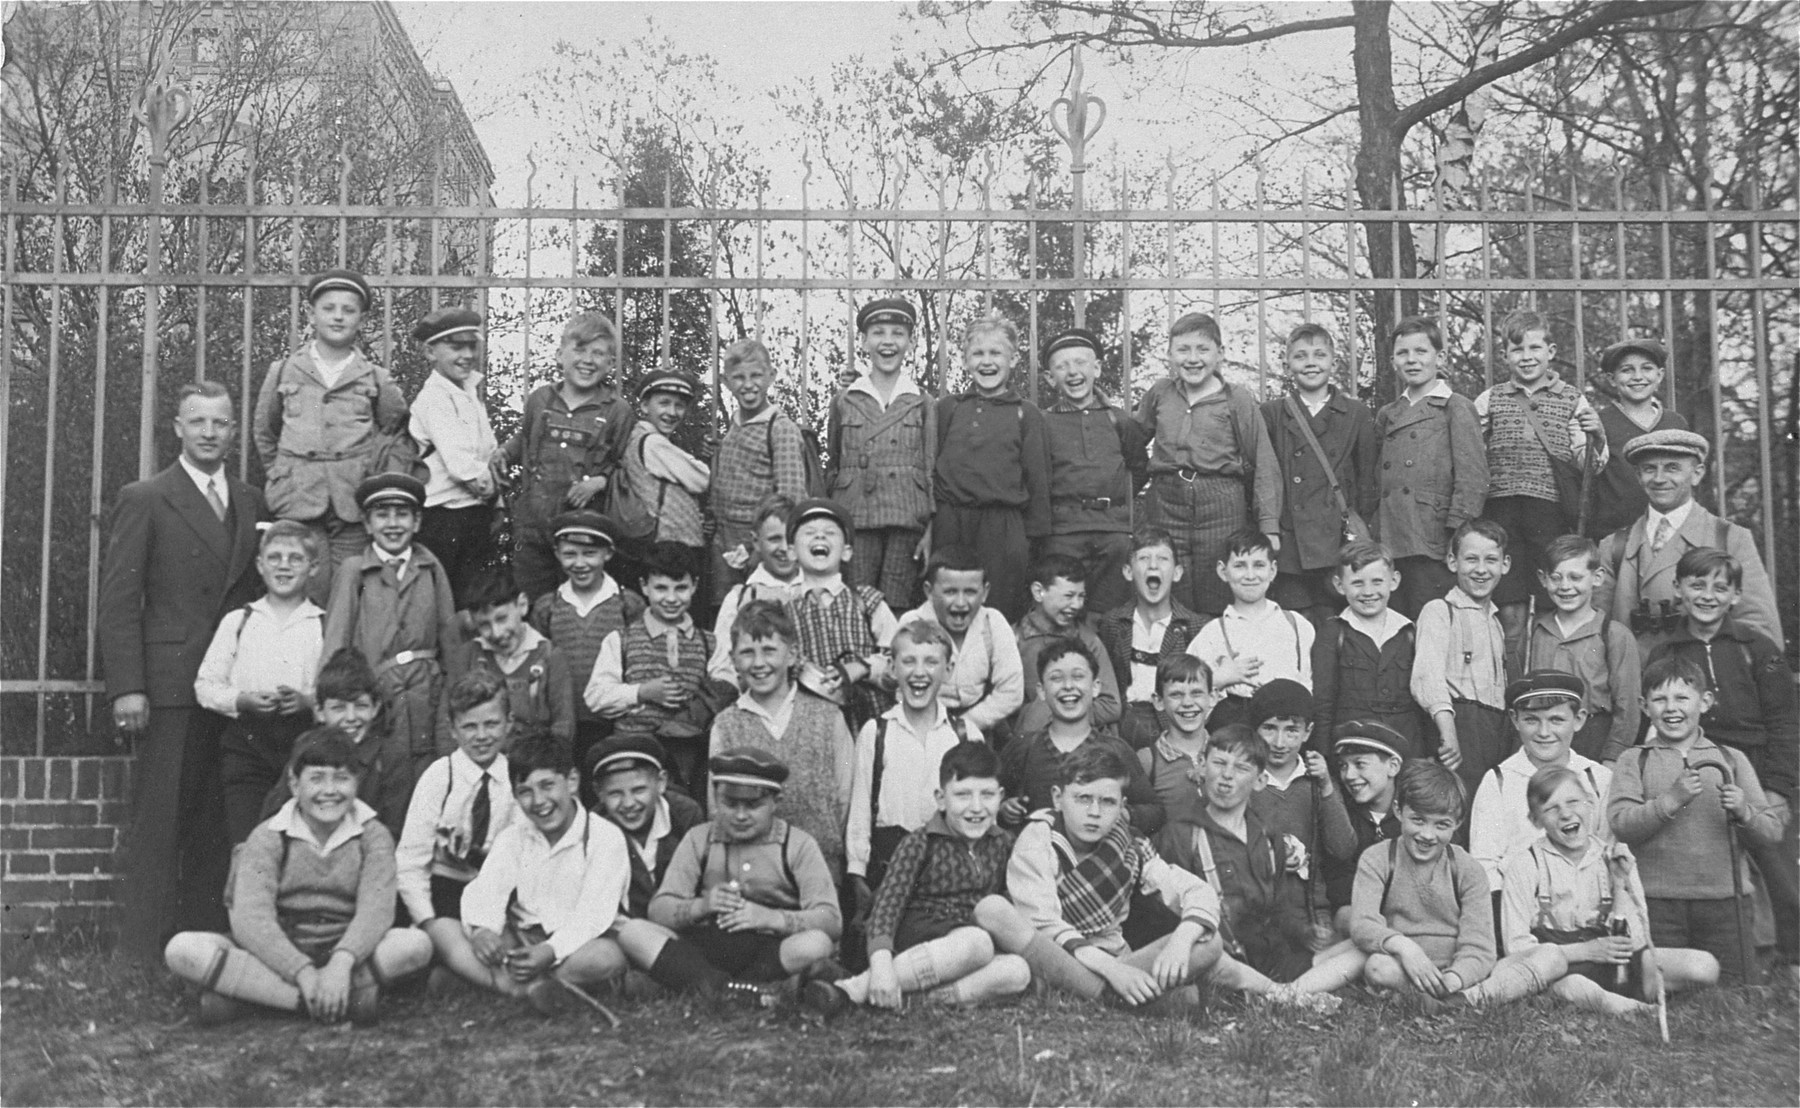 School children pose for a group portrait.  Peter Victor is among them.